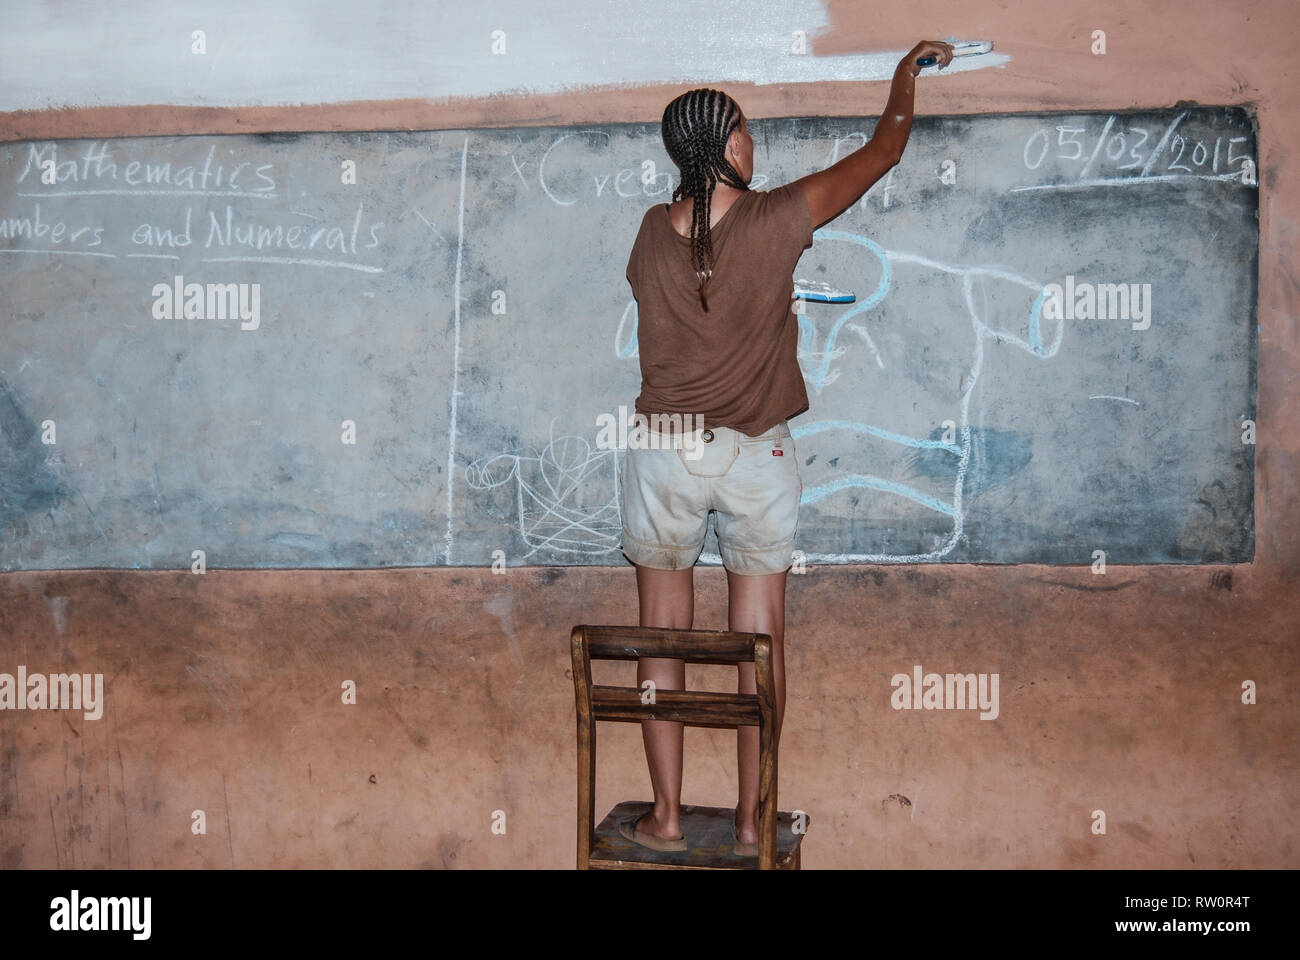 A woman with afro braids is painting a wall of a local elementary school in Ghana, Africa - Stock Image